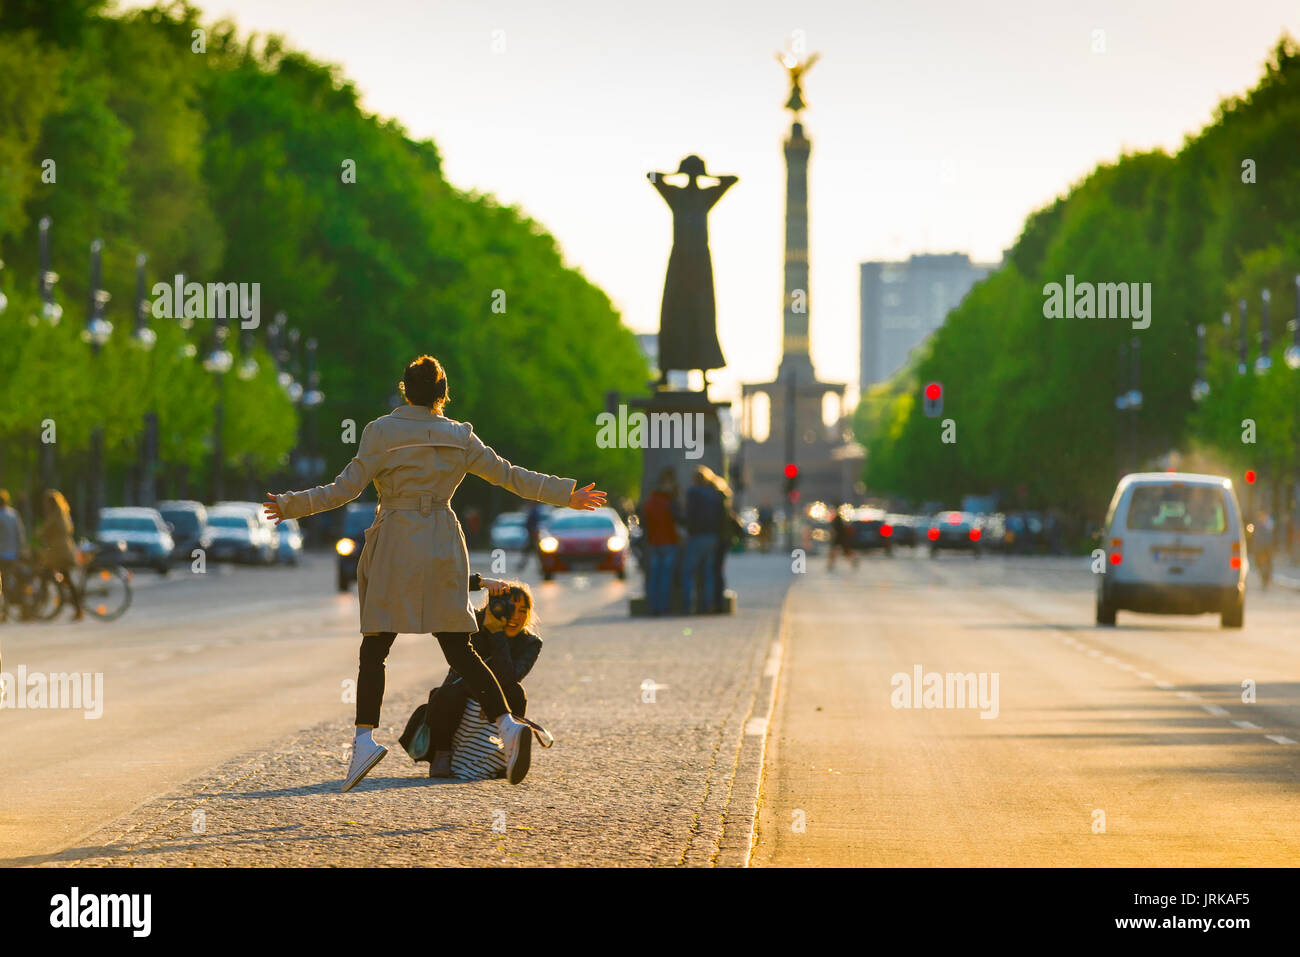 Berlin tourists, a young woman tourist leaps into the air whilst being photographed in the Strasse Des 17 Juni, center of Berlin, Germany. - Stock Image